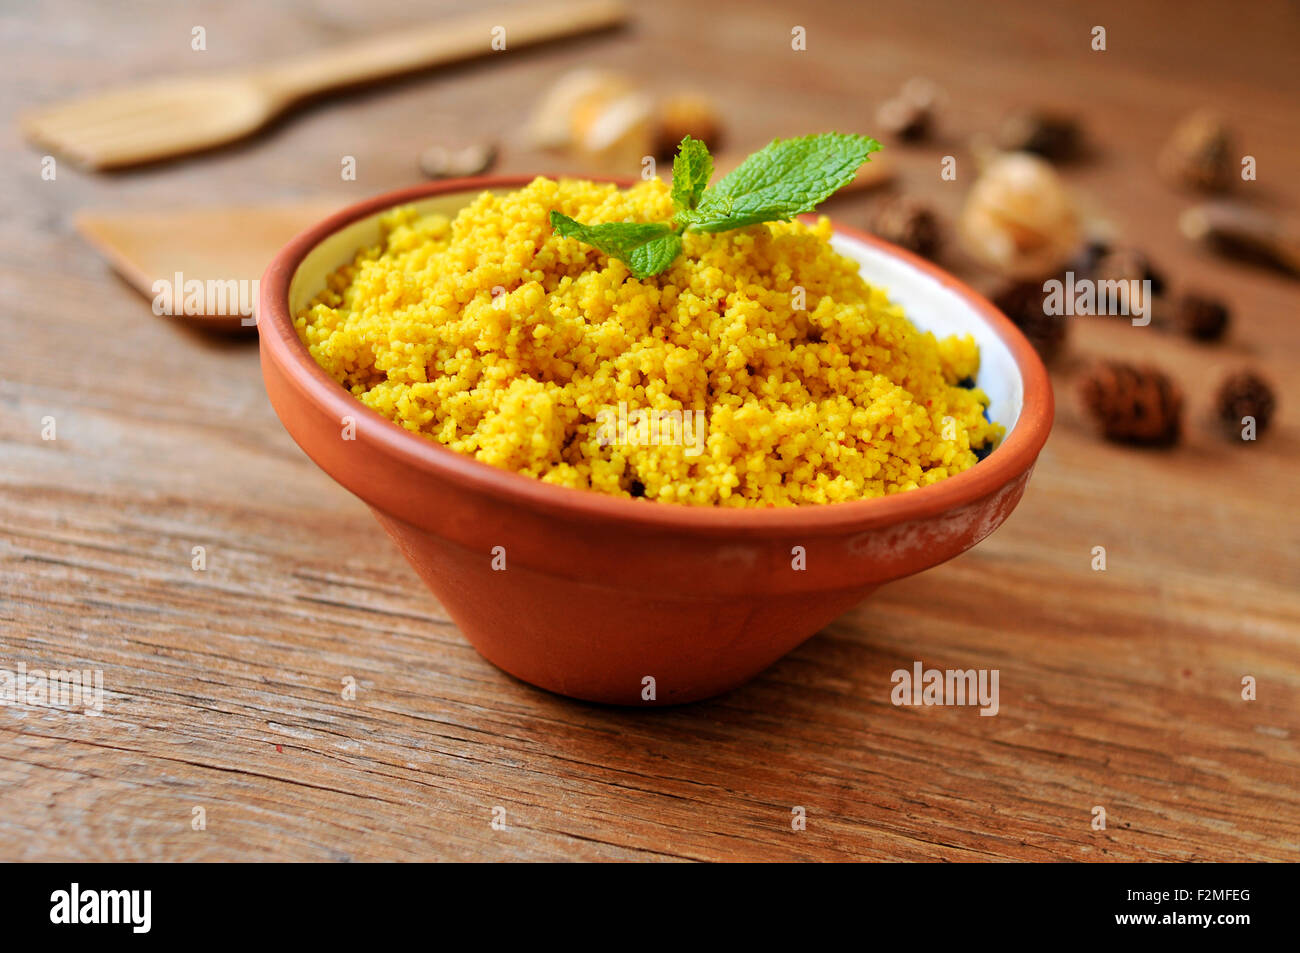 an earthenware bowl whit spiced couscous on a rustic wooden table - Stock Image